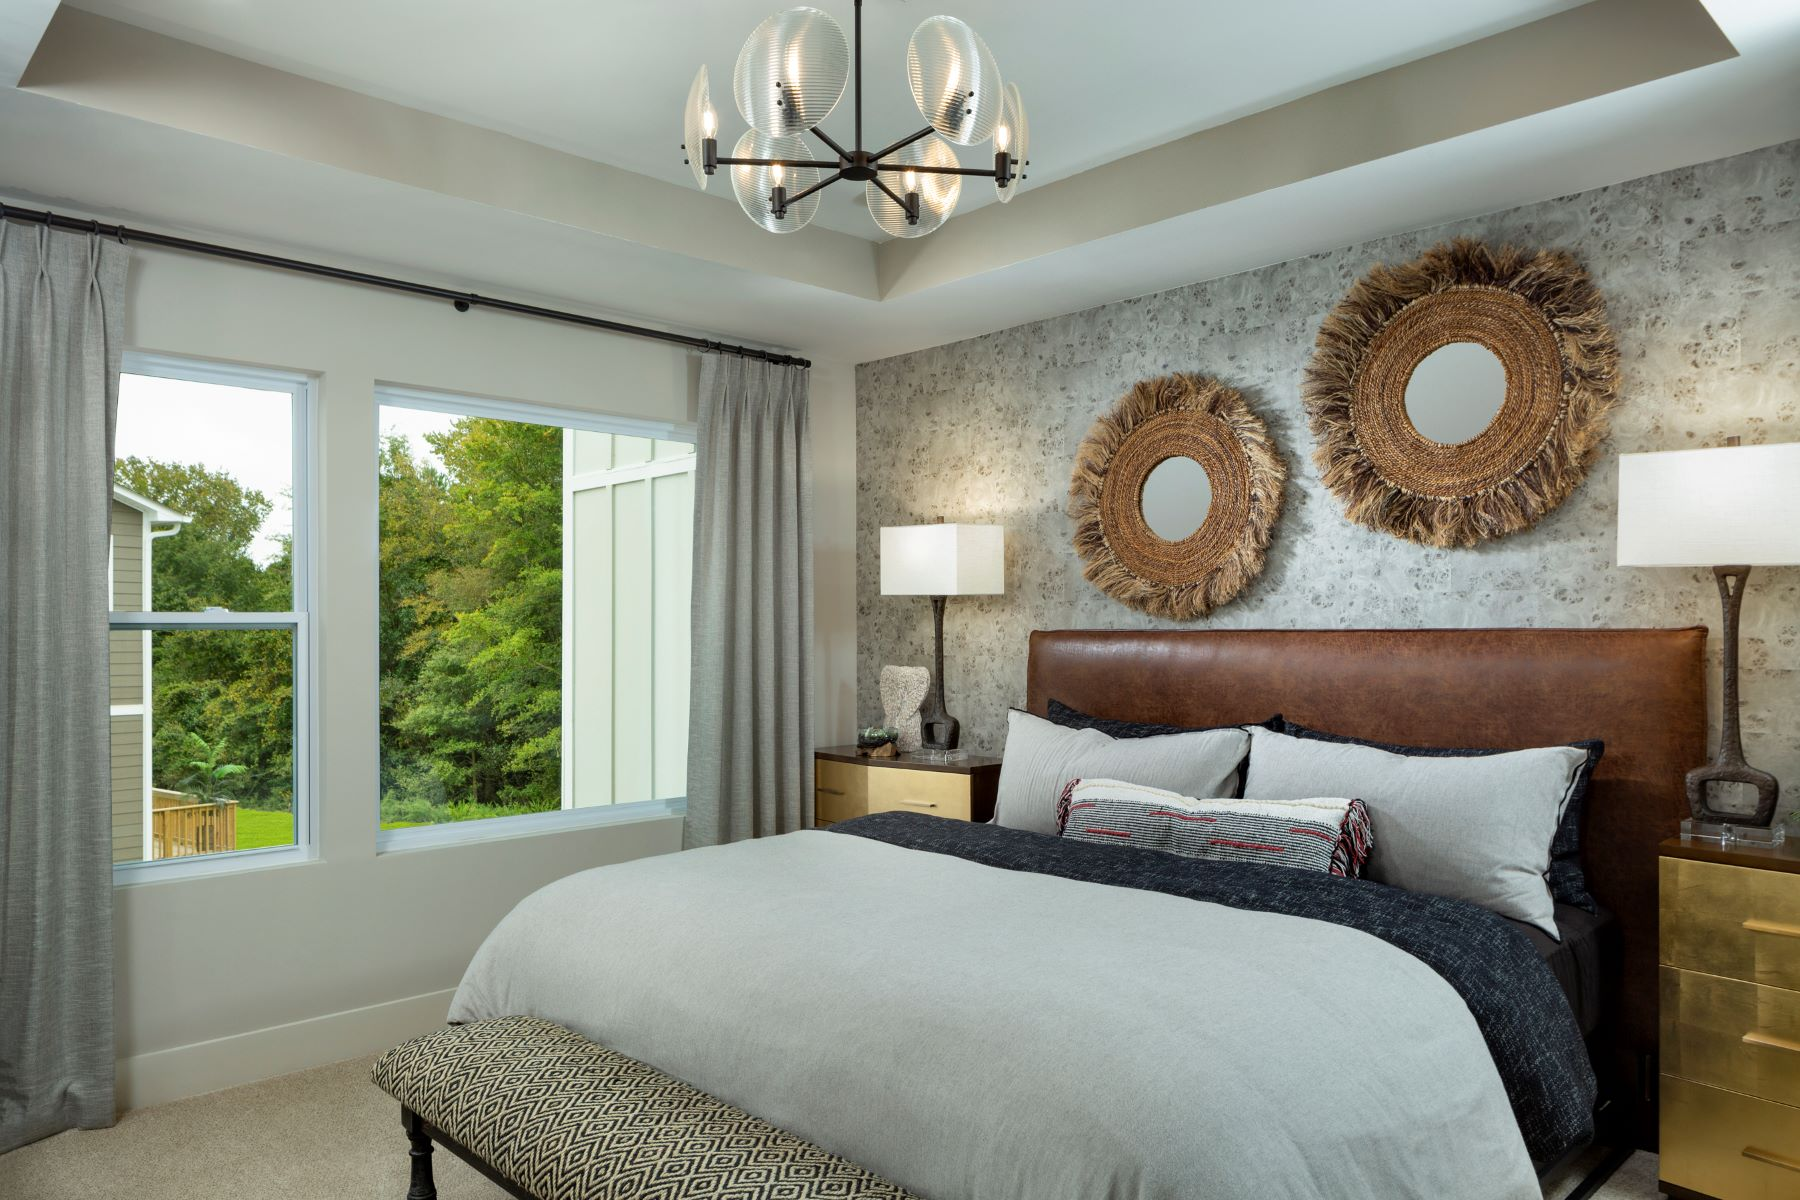 Greenwich Plan Bedroom at Aria at The Park in Charlotte North Carolina by Mattamy Homes